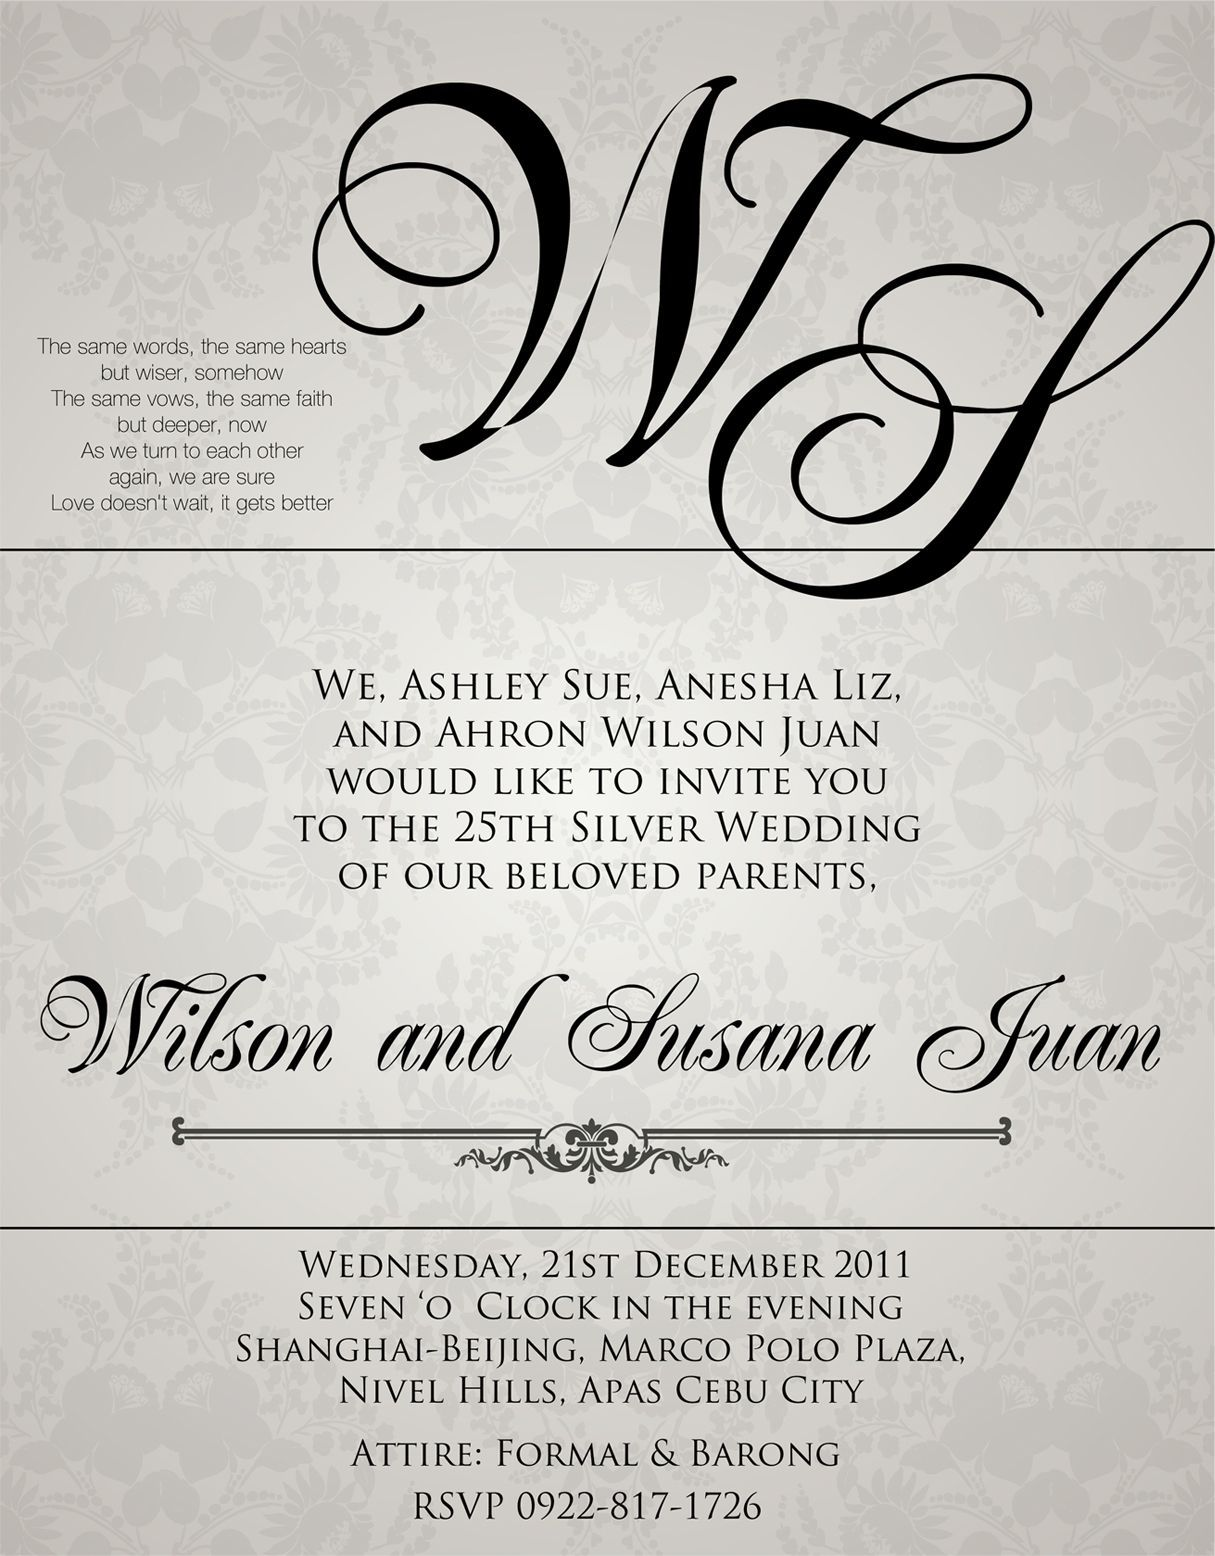 Sample wedding invitation wording in the philippines for Wedding invitations samples philippines